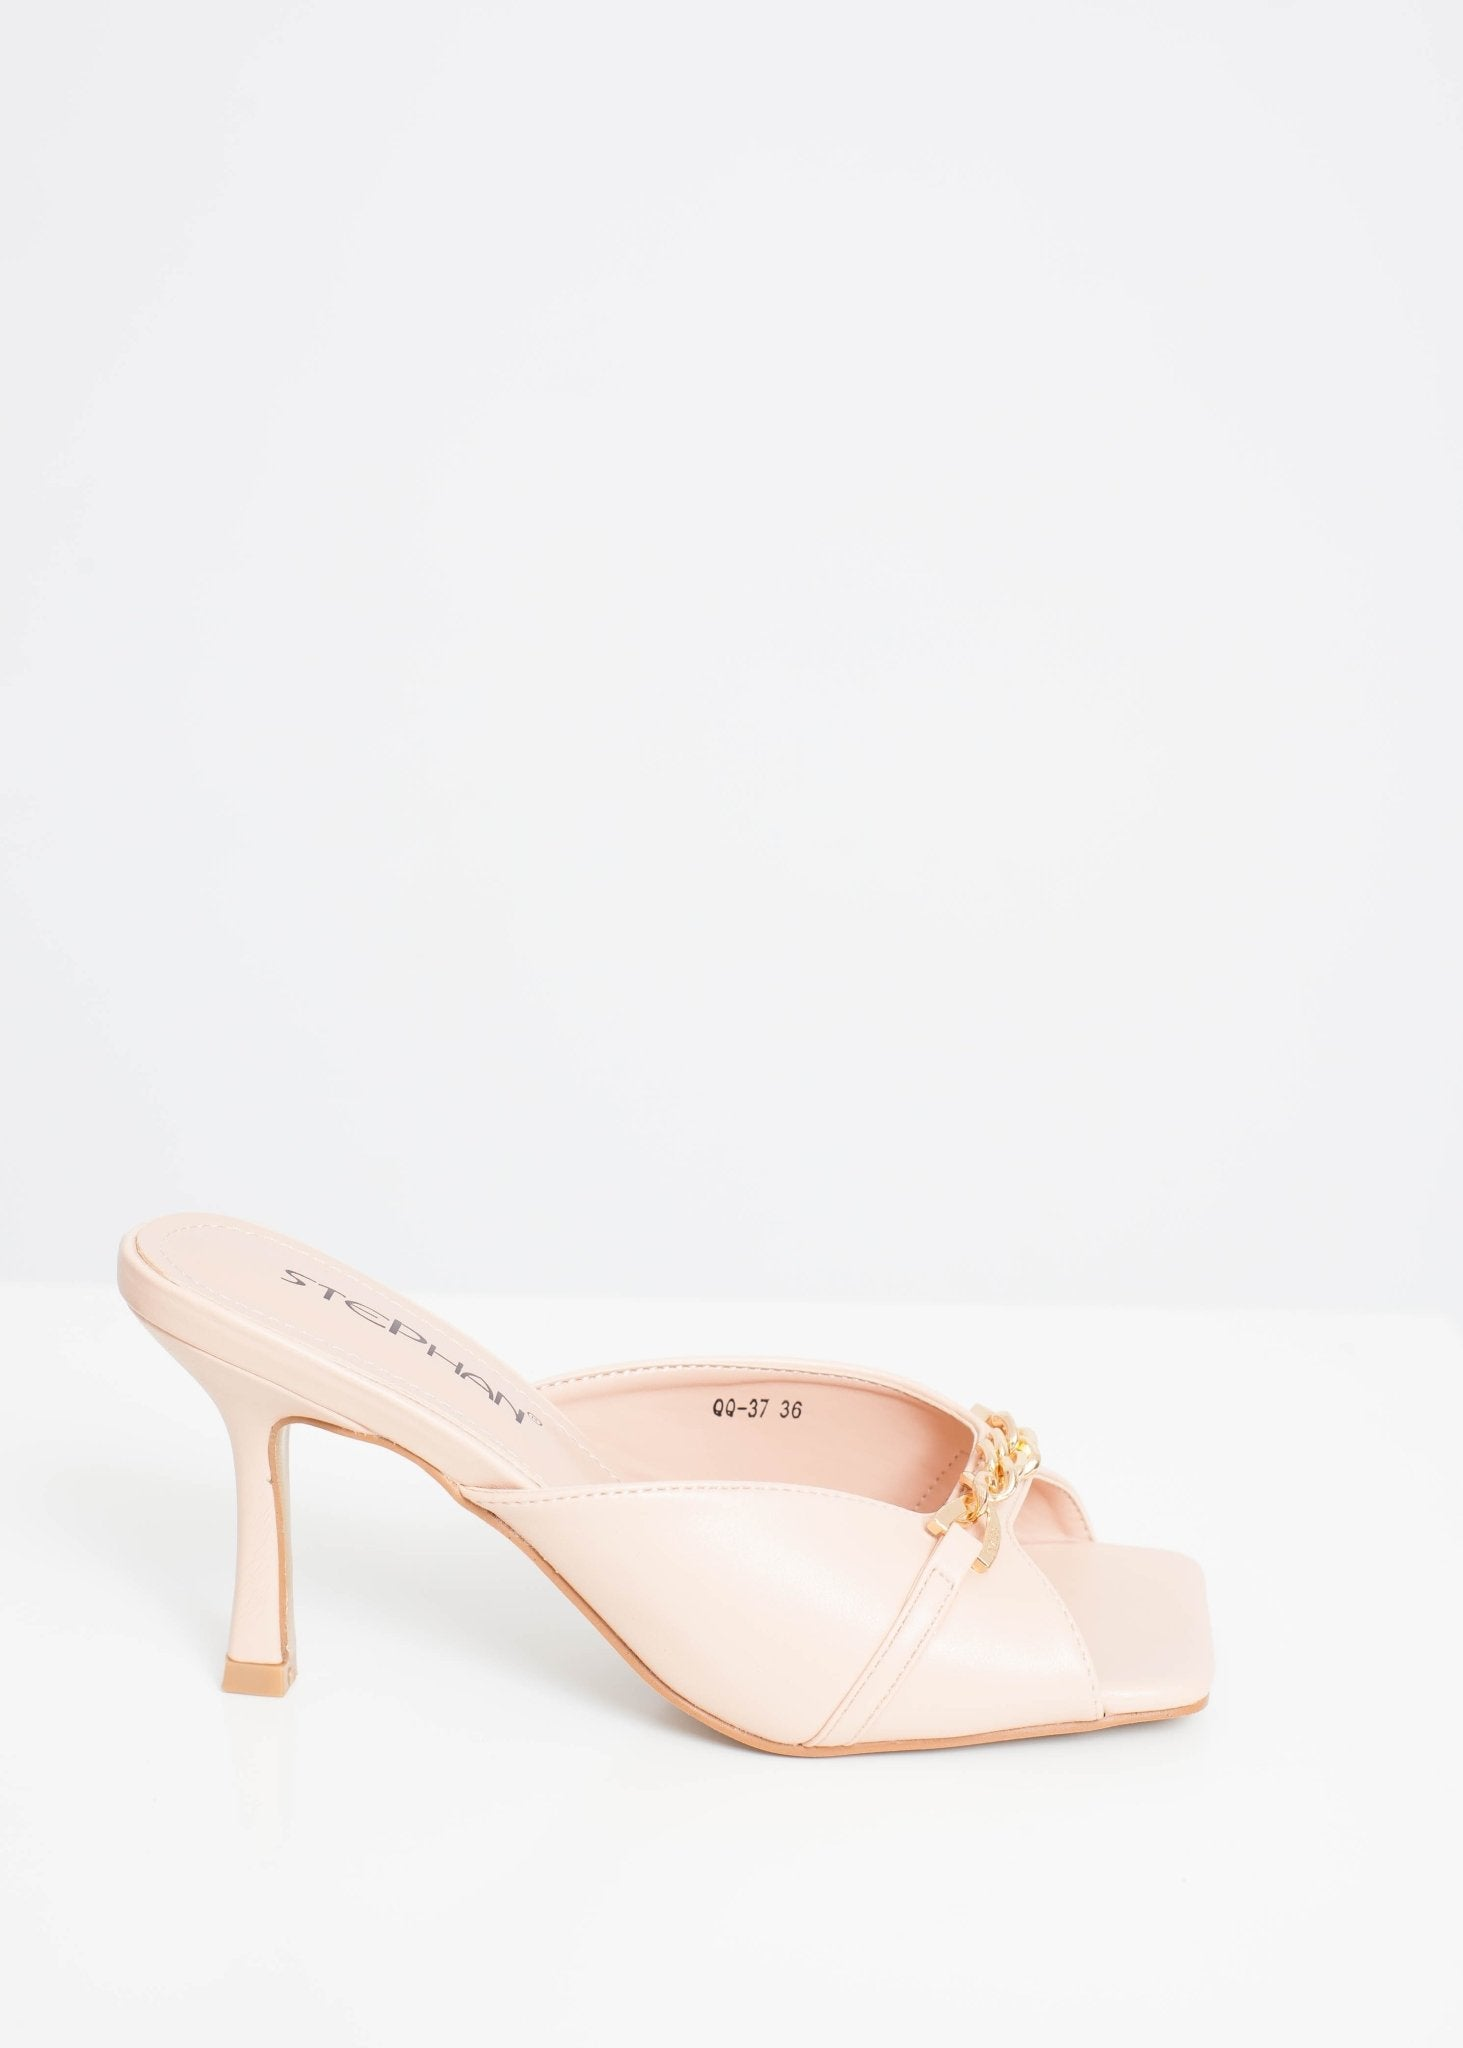 Priya Heeled Chain Mule In Neutral - The Walk in Wardrobe